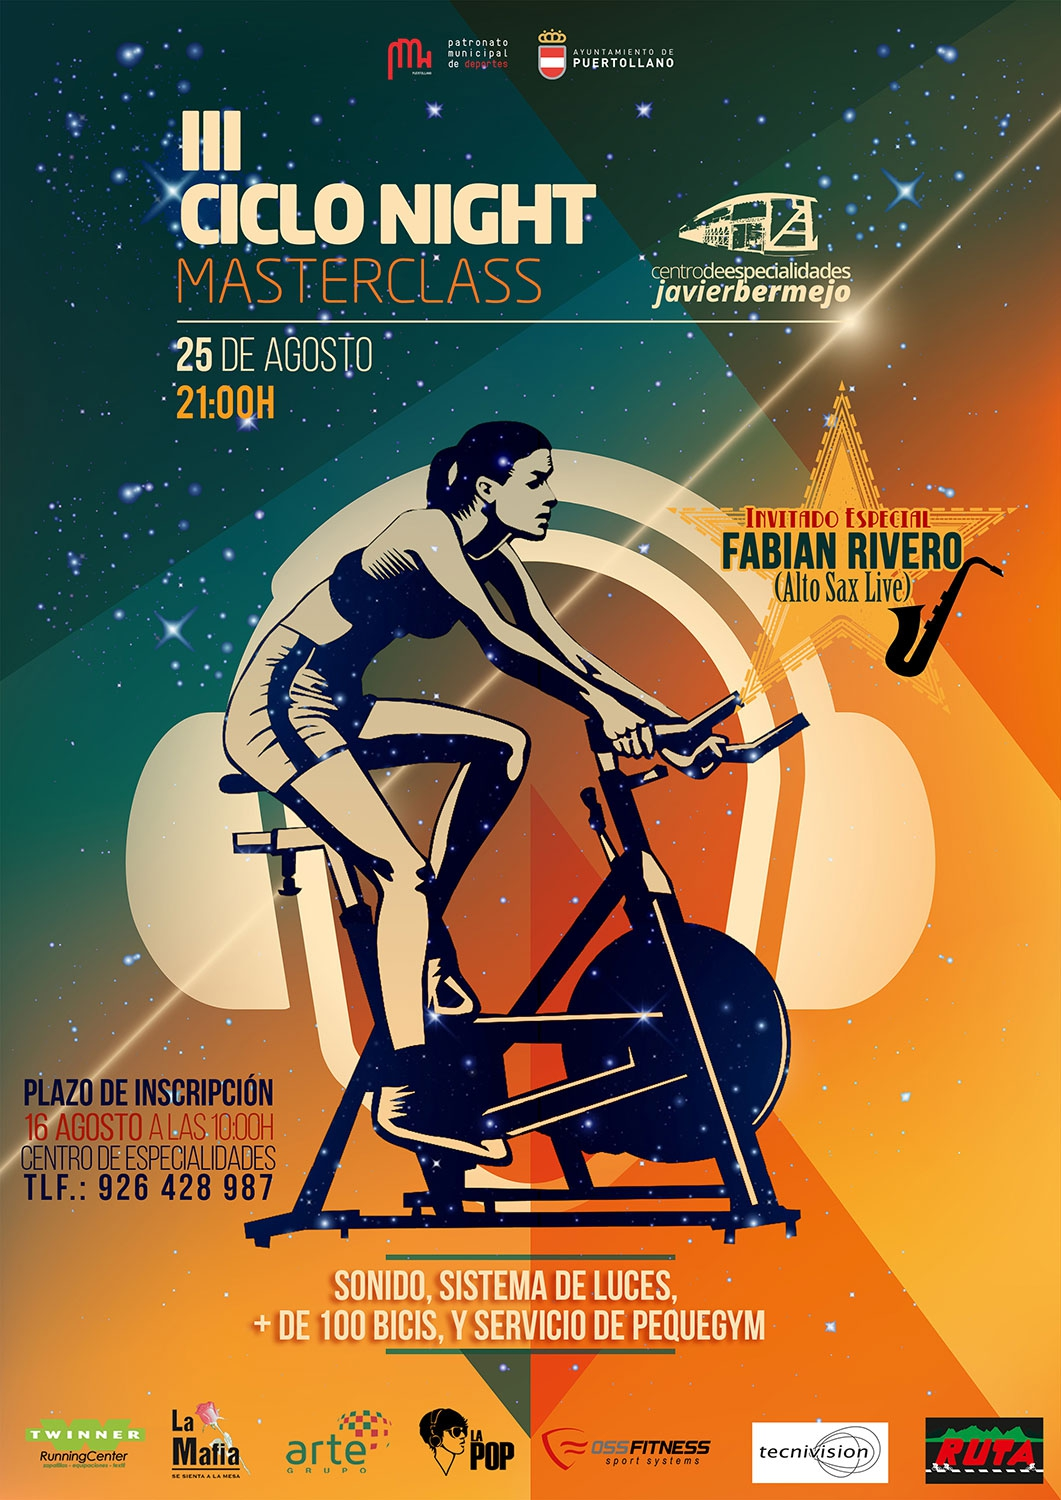 III Ciclo Night Masterclass